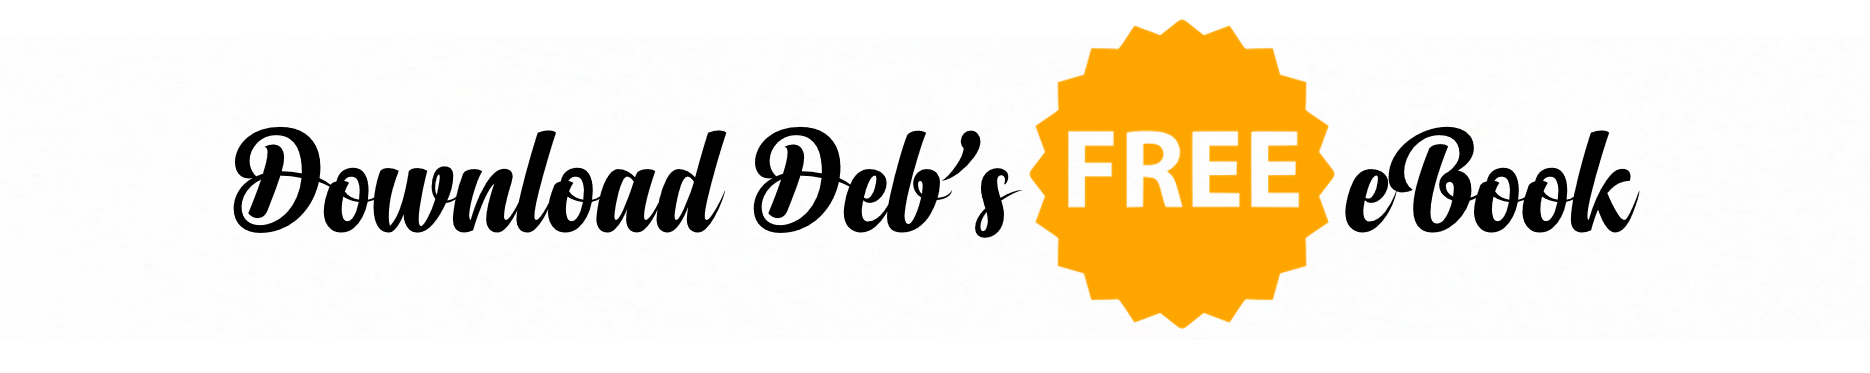 debs free ebook.png